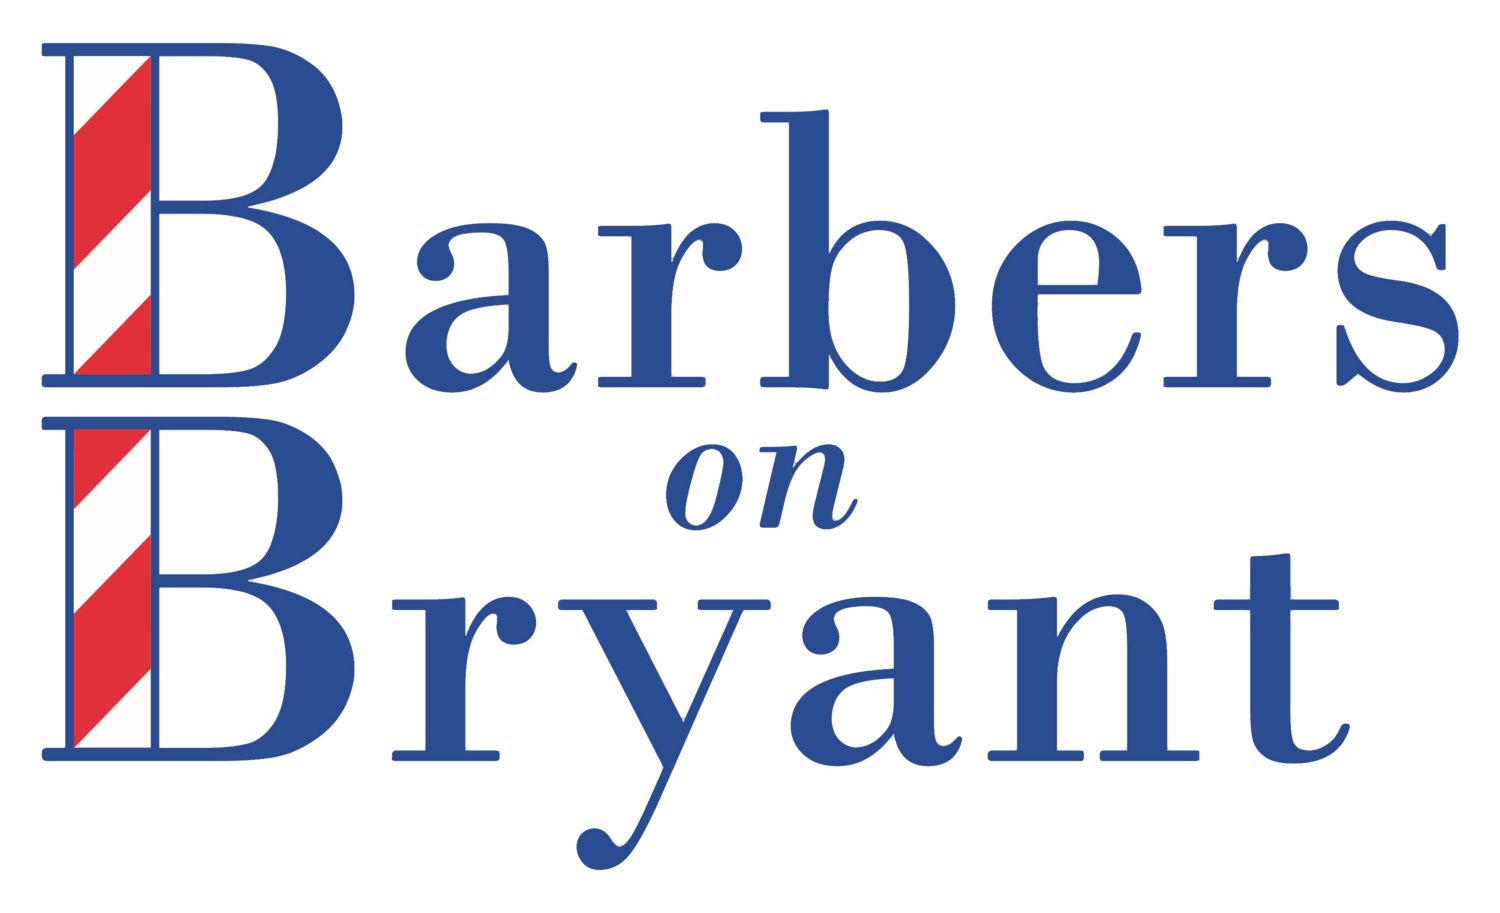 Barbers on Bryant